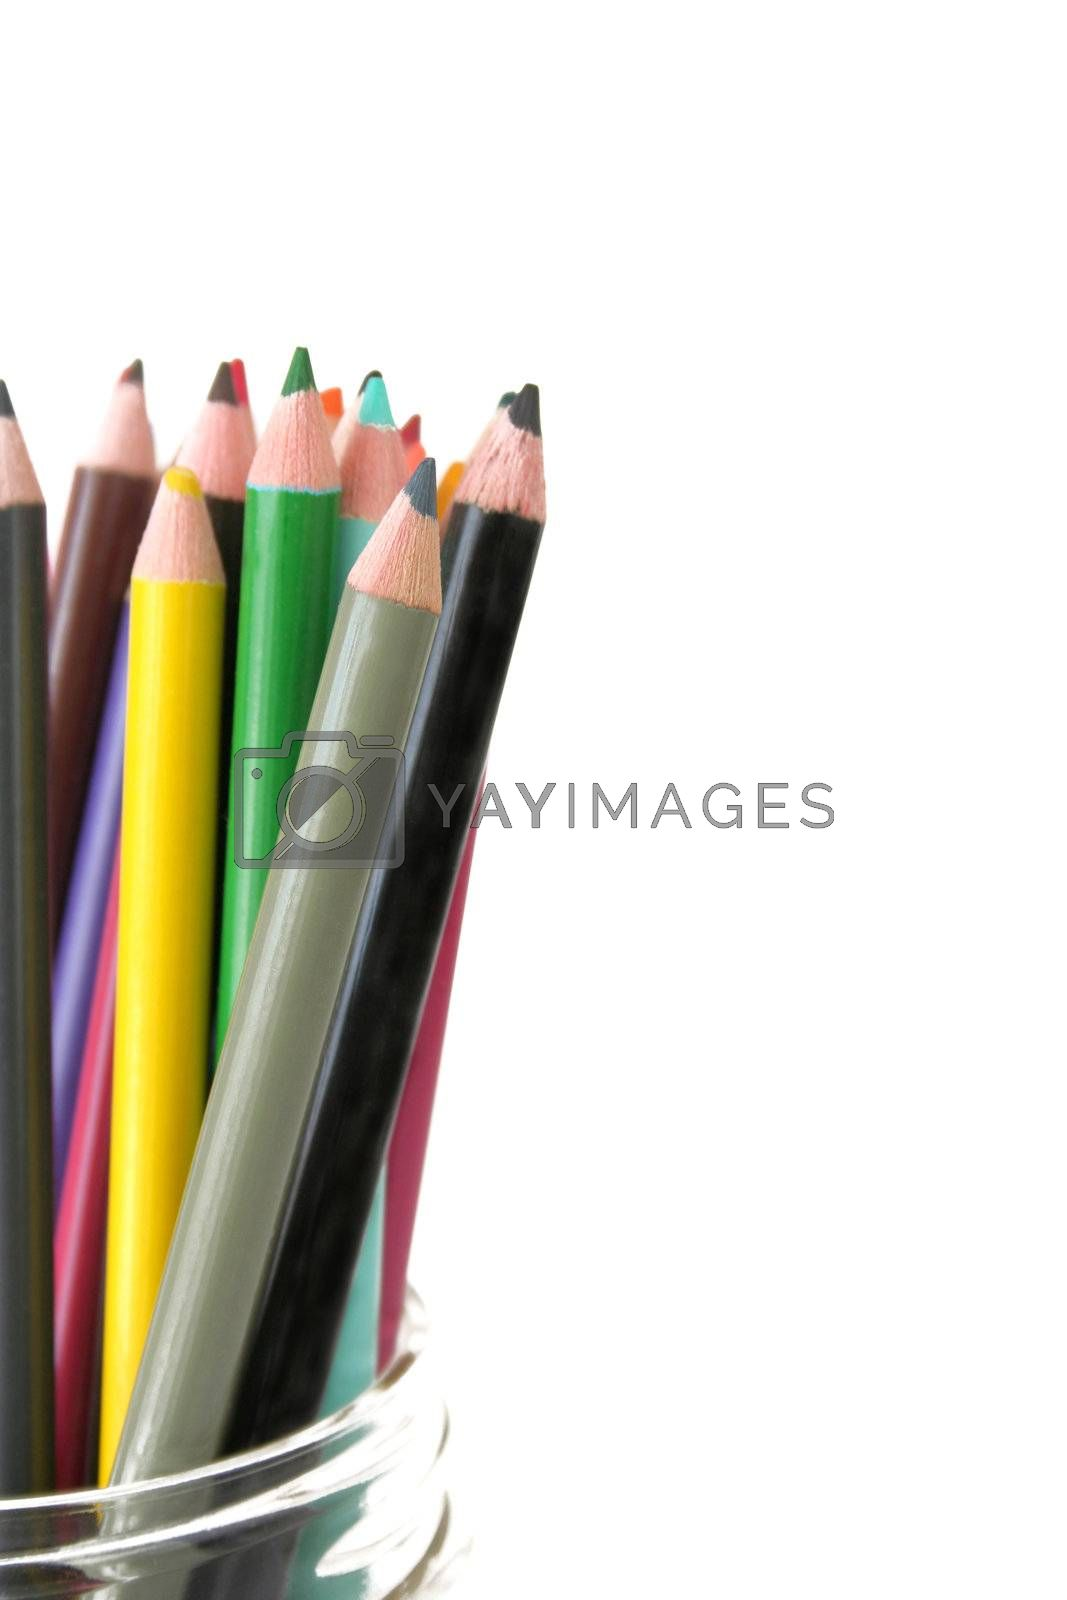 Colorful pencils in a jar against a white background.  Copy space available. Used a shallow depth of field with selective focus.